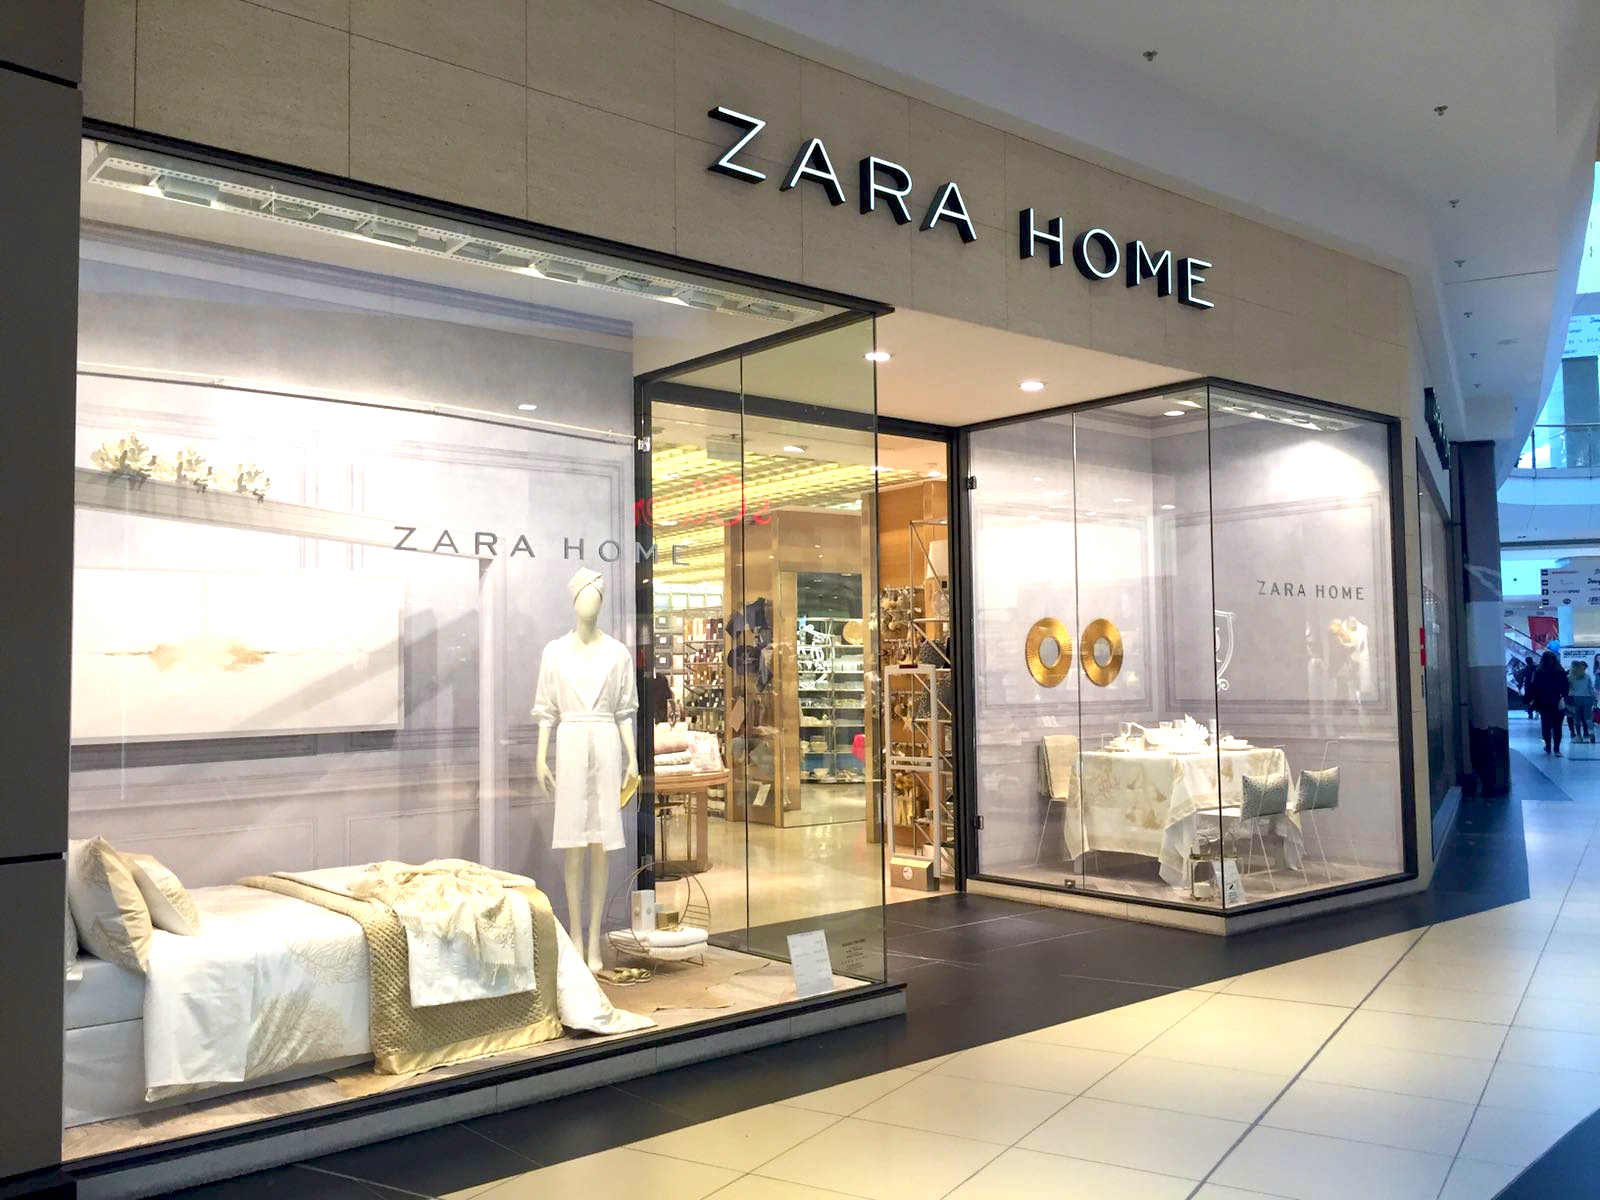 5 pretty decor finds from my zara home shopping spree for Shopping for home